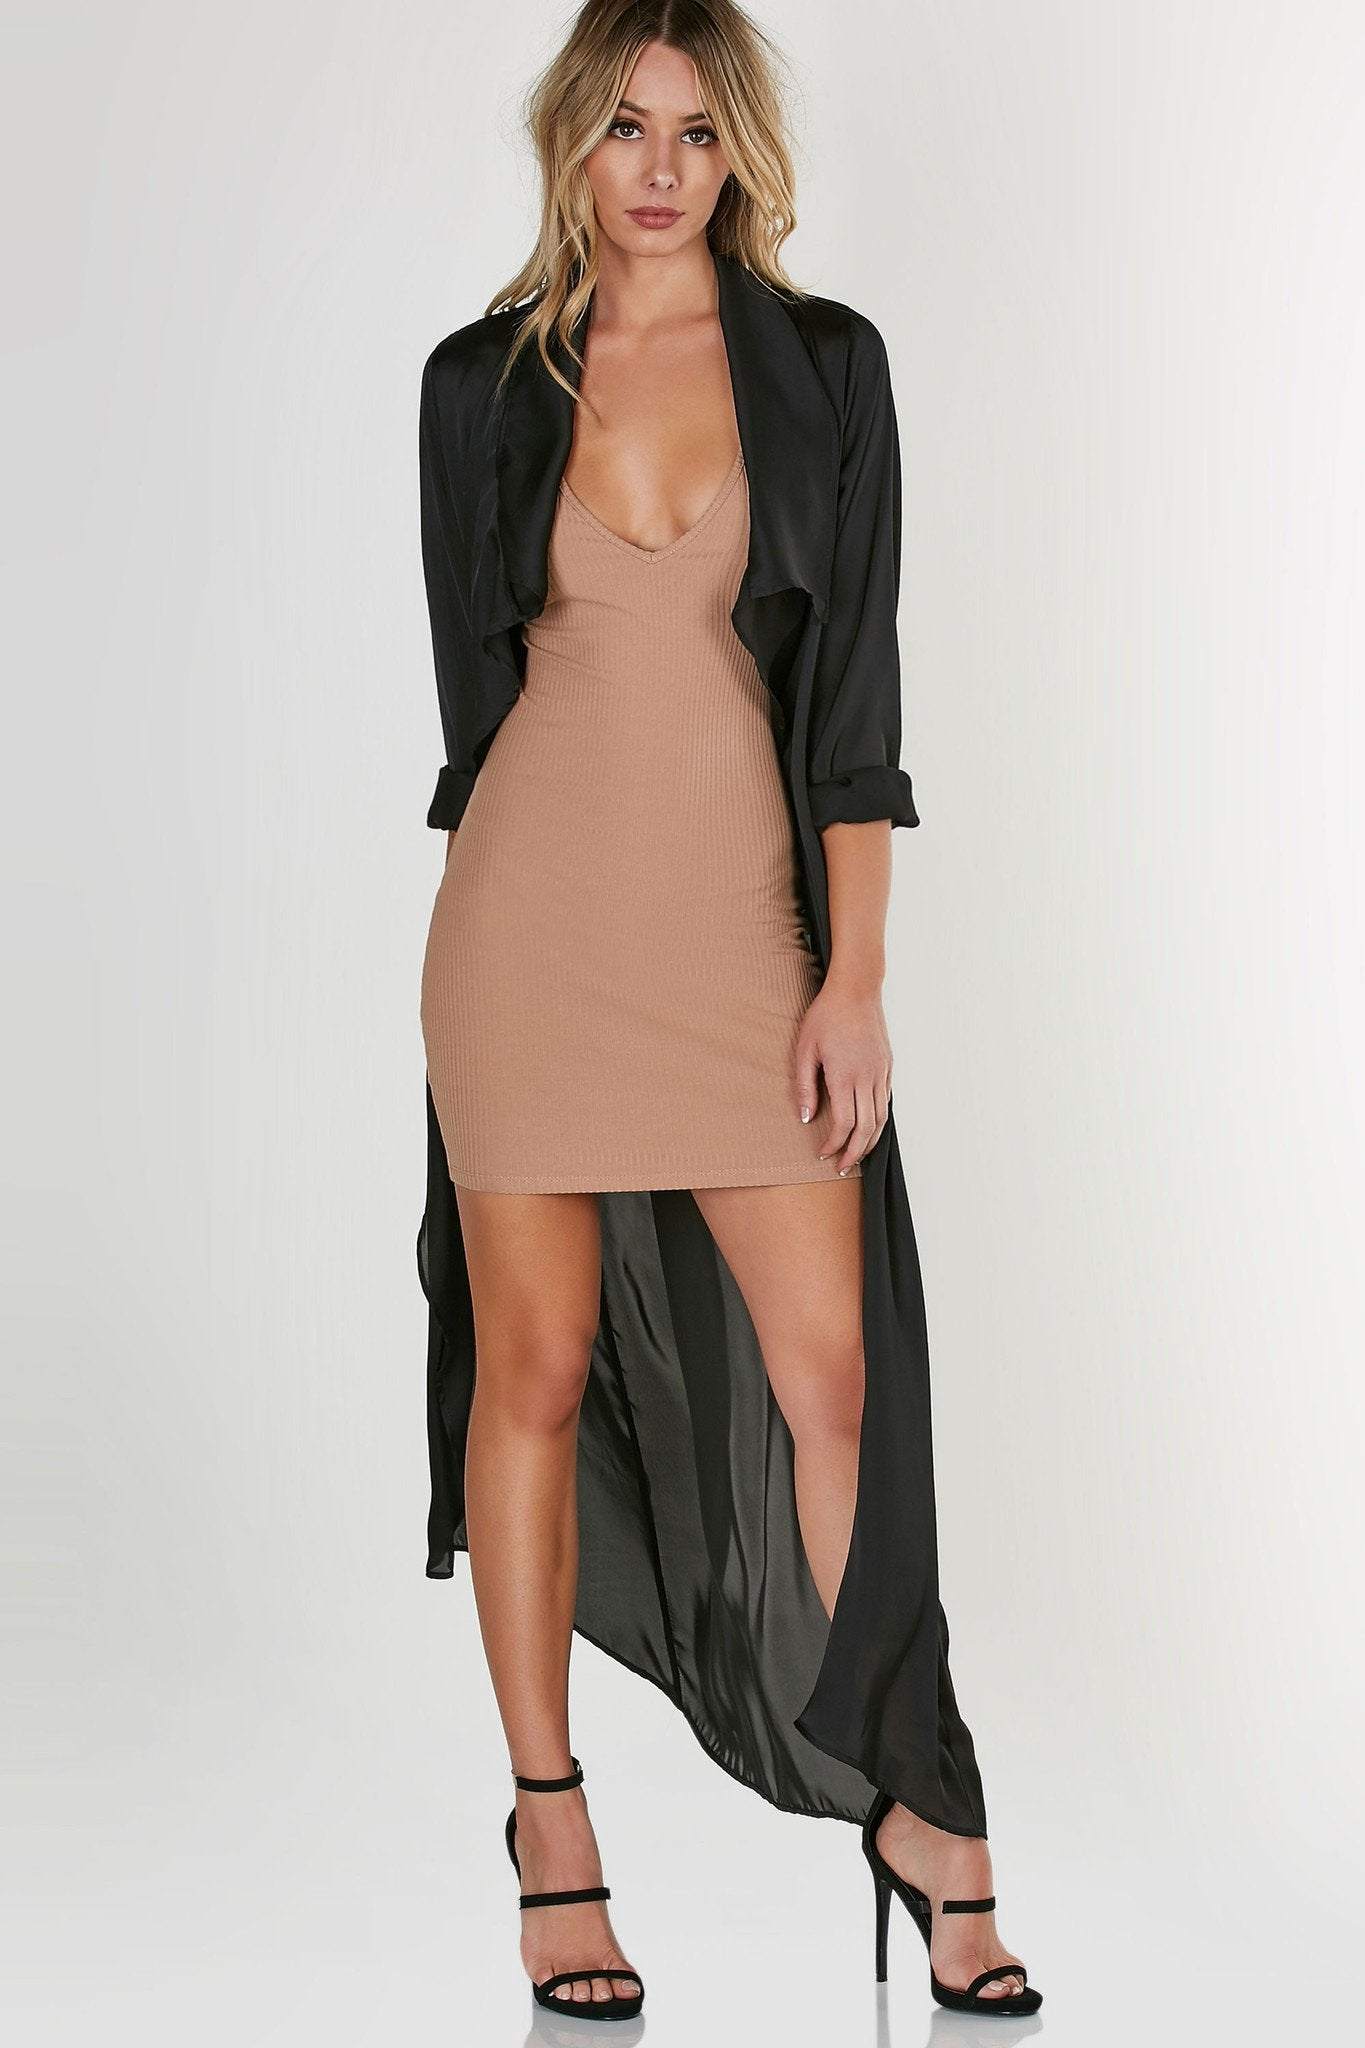 Longline, flowy duster coat with drapey open front. Long sleeves with satin like finish.